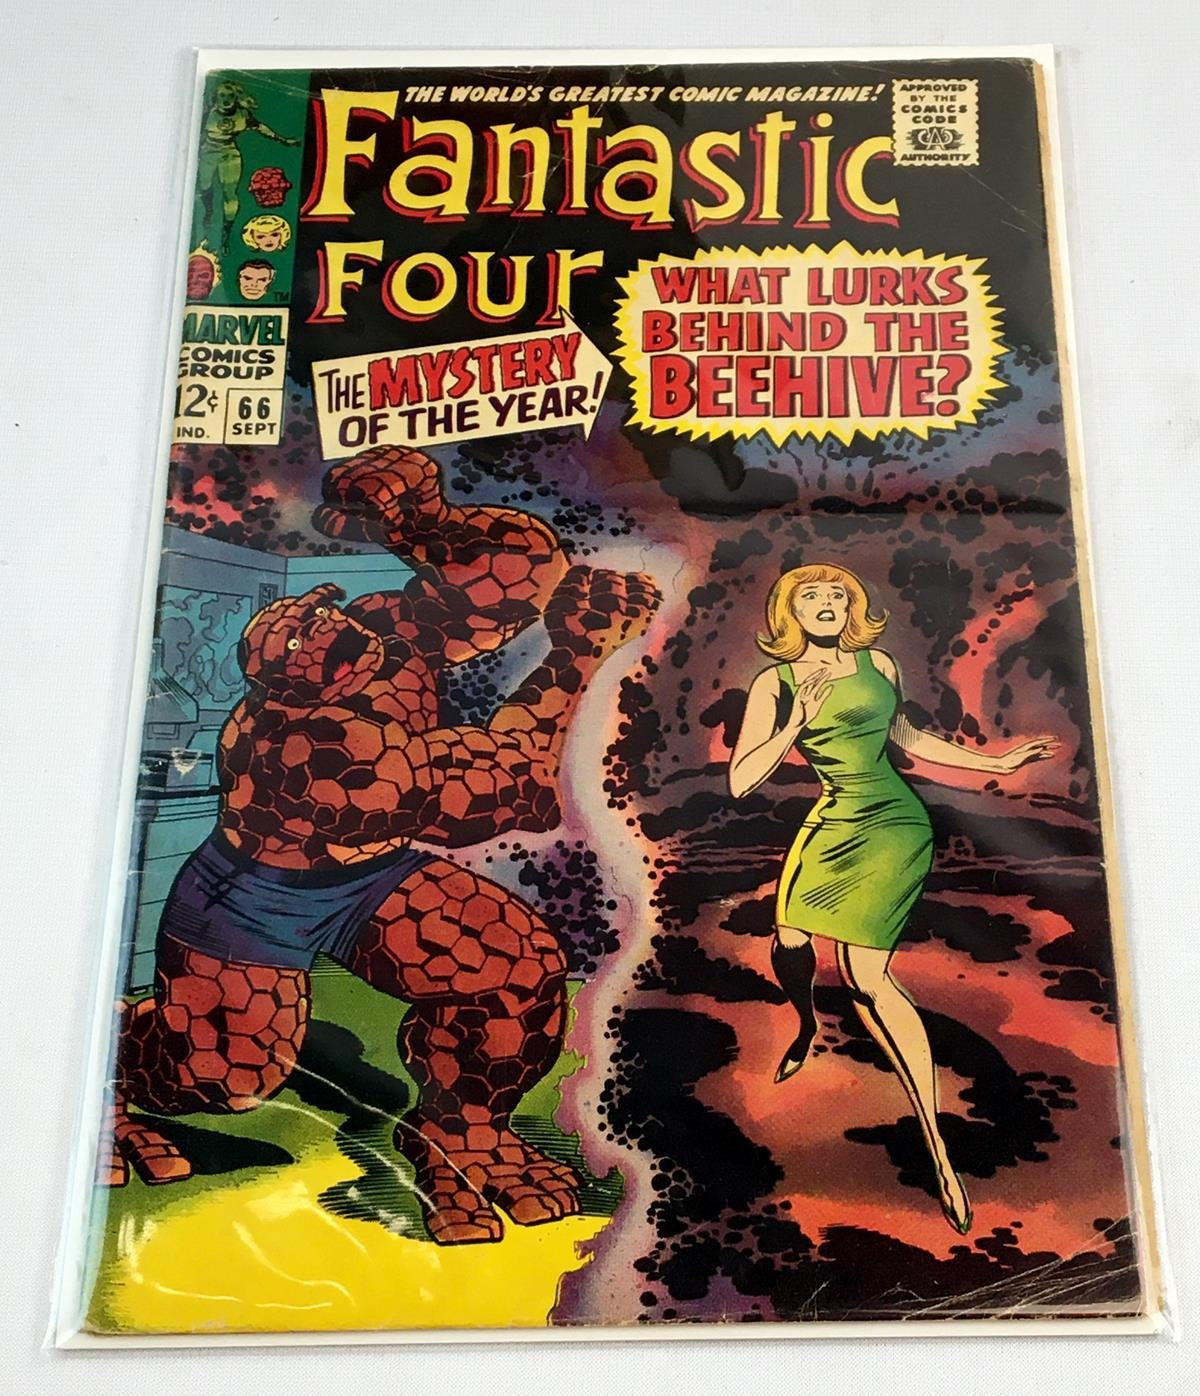 Vintage 1967 Fantastic Four (1st Series) No. 66 Marvel 12 Cent Comic Book